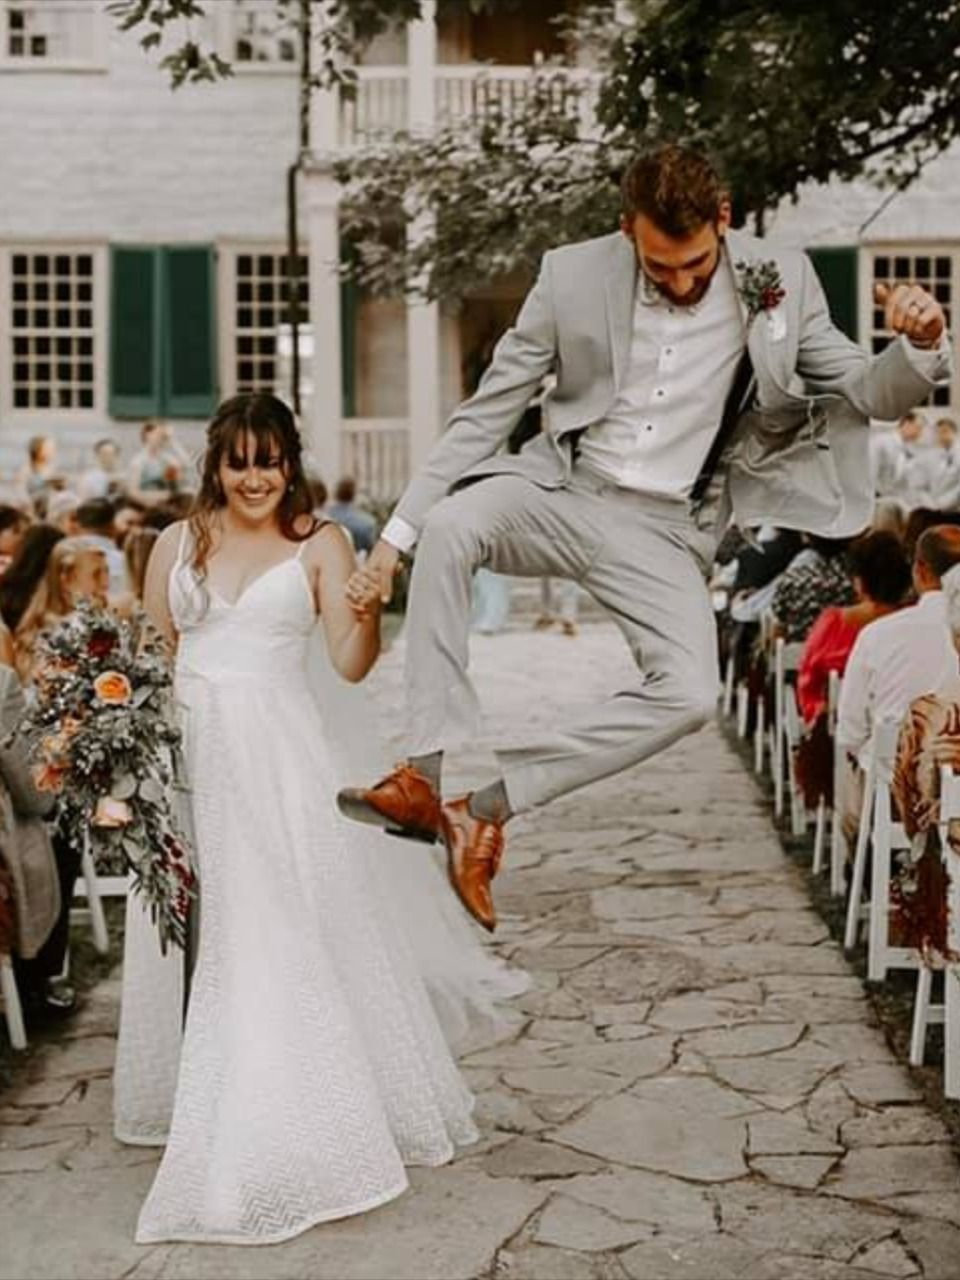 76 Wedding Moments Captured That Will Leave You Speechless In 2020 Wedding Moments Best Wedding Photographers Wedding